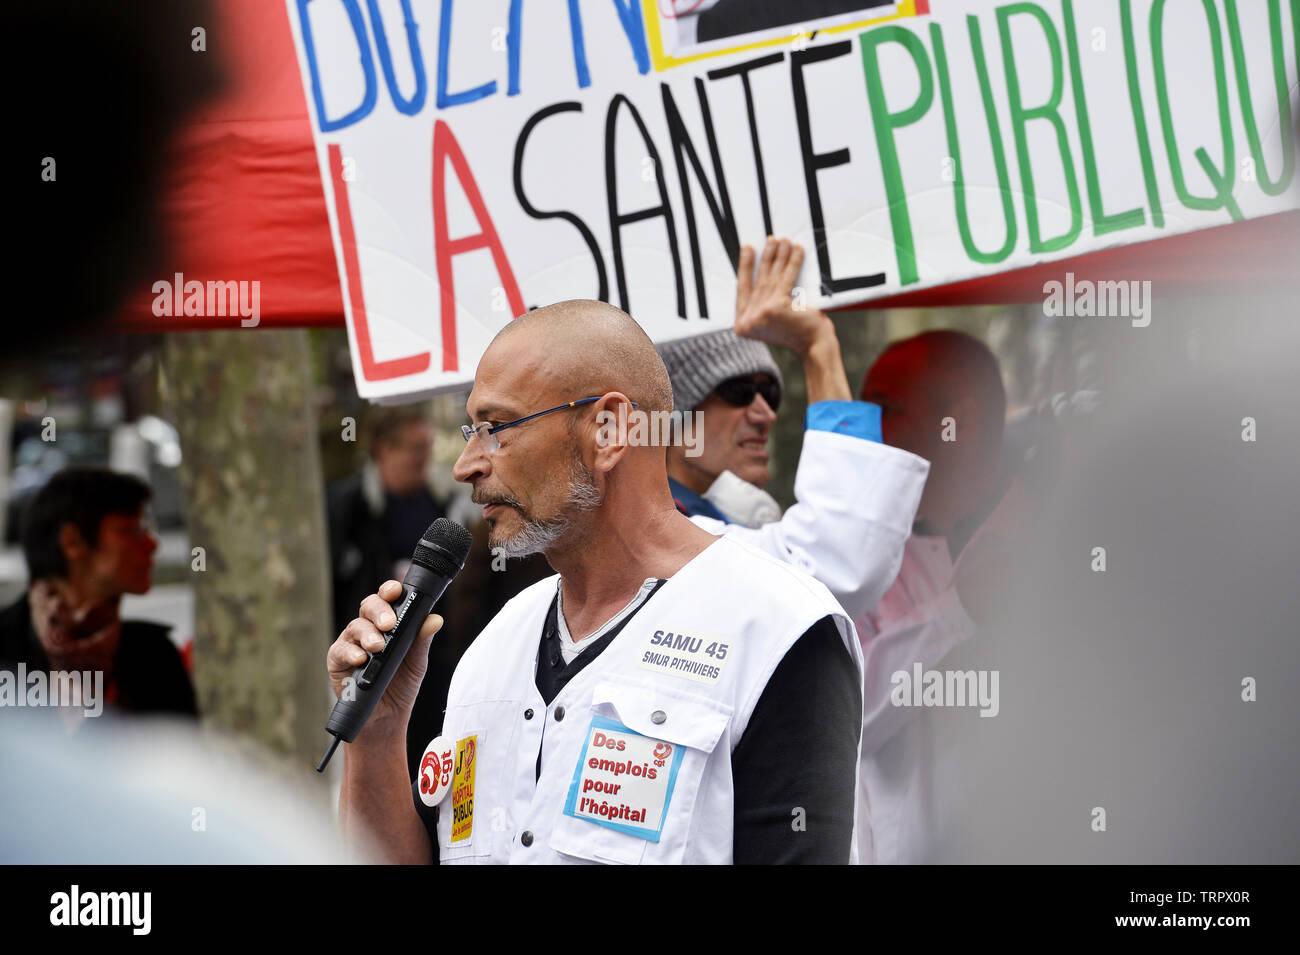 Emergency Health Care workers Protest in Paris - Frankreich Stockfoto